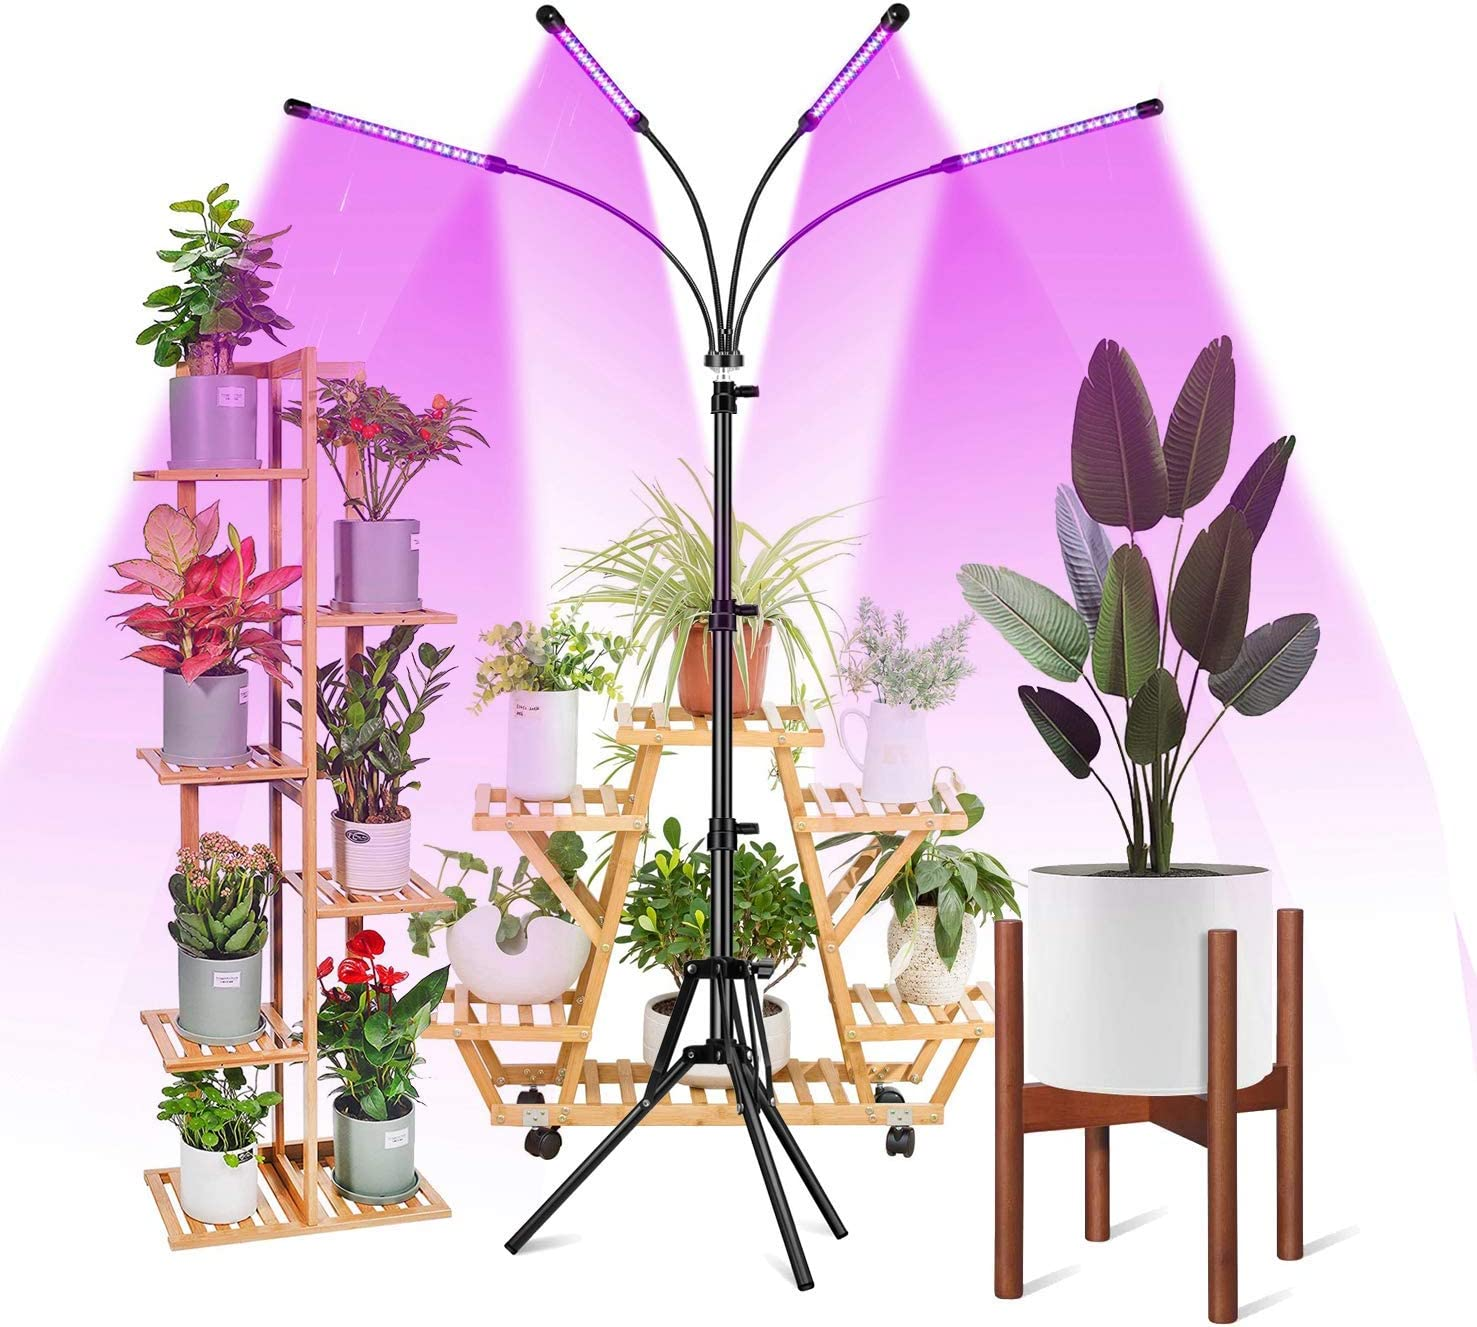 LED Grow Light with Adjustable Tripod, RHM Four-Head Grow Lights for Indoor Plant with Cycle Timer Remote Control Red Blue Mixed Spectrum 4 Lighting Modes 10 Level Dimming